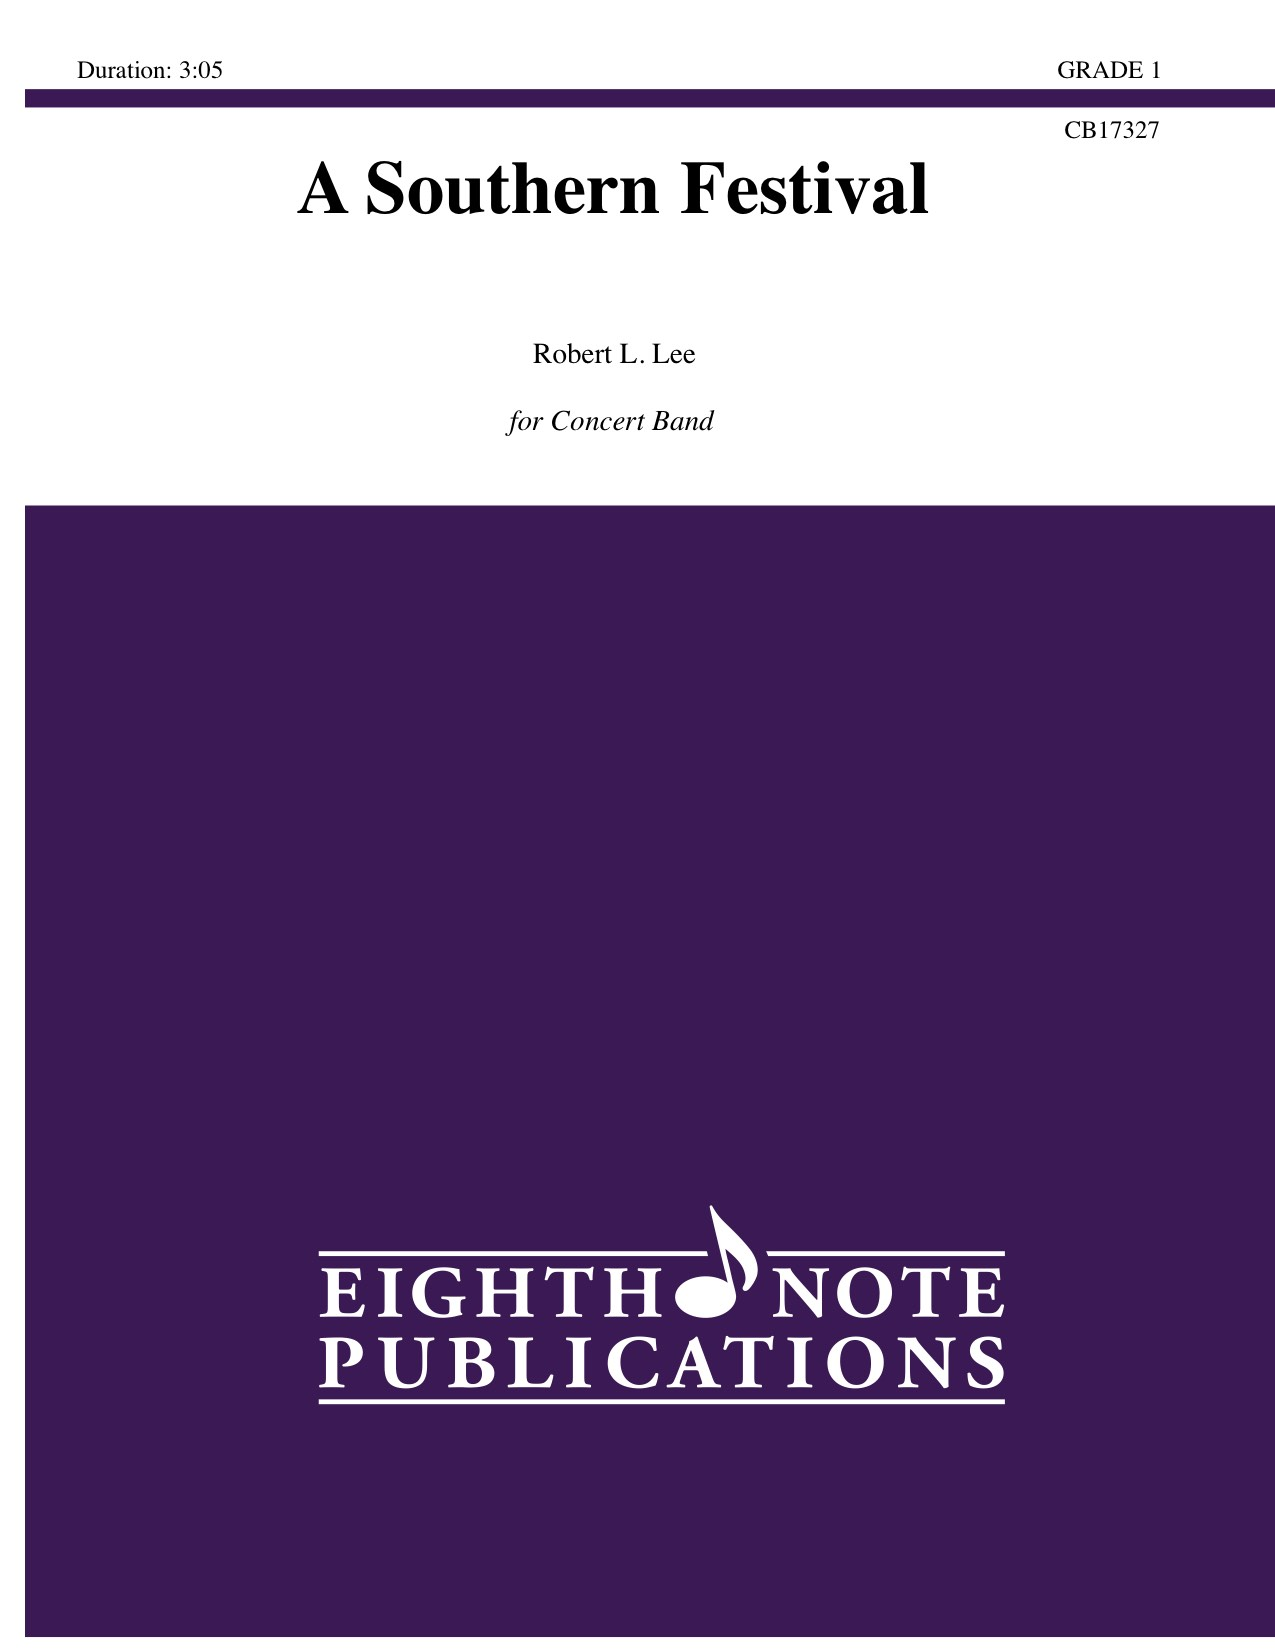 Southern Festival, A - Robert L. Lee